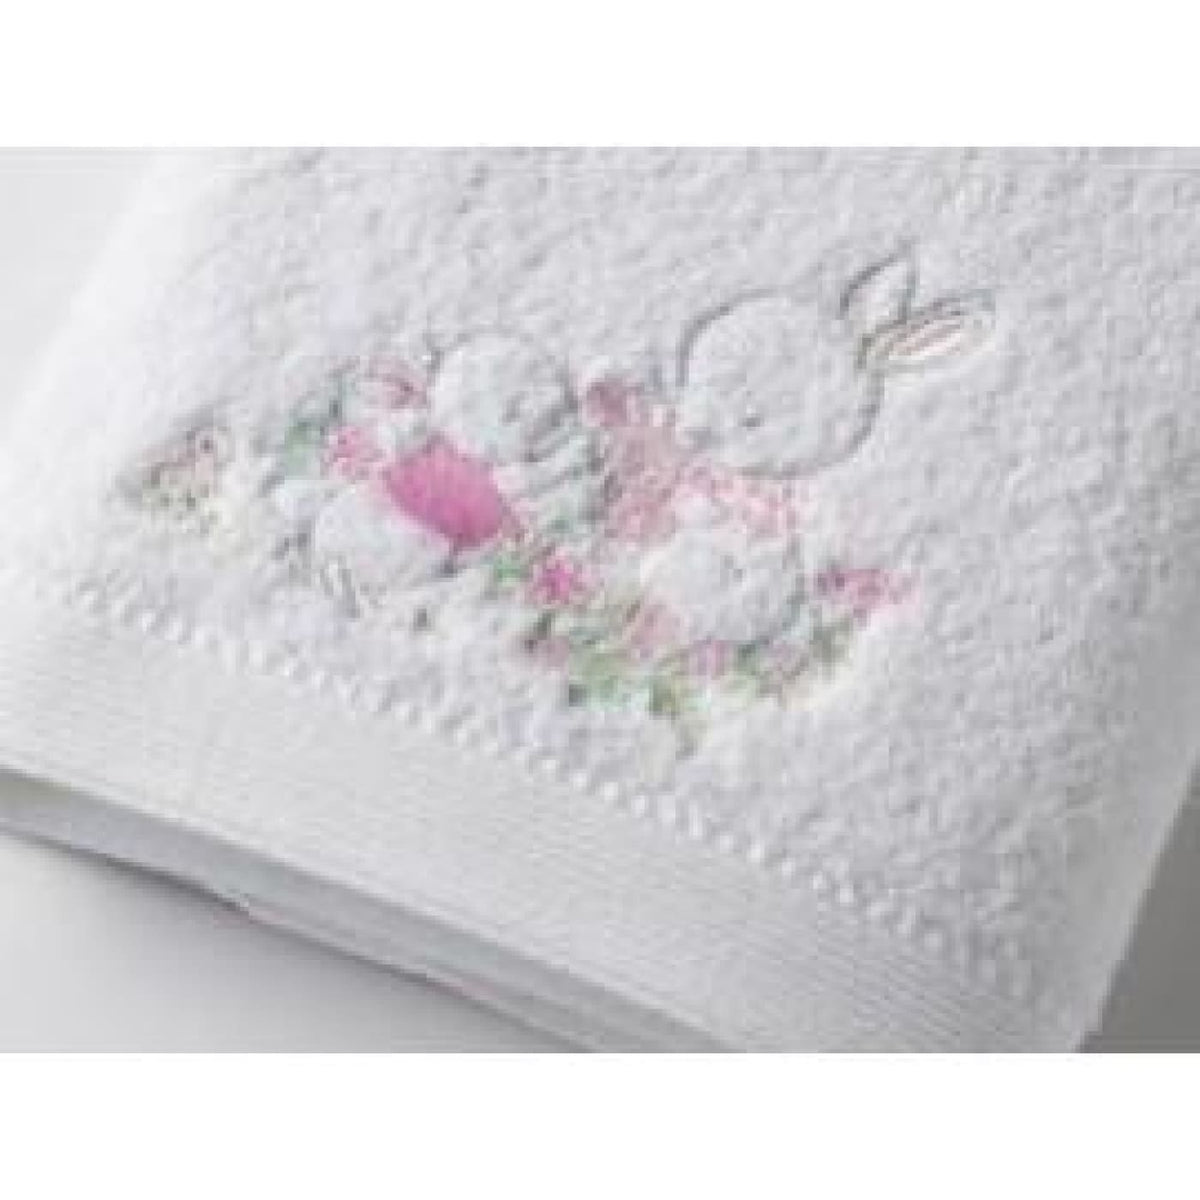 Pilbeam Towel and Face Washer in Organza Bag - Baby Girl Rabbit - Baby Girl Rabbit - BATHTIME & CHANGING - TOWELS/WASHERS